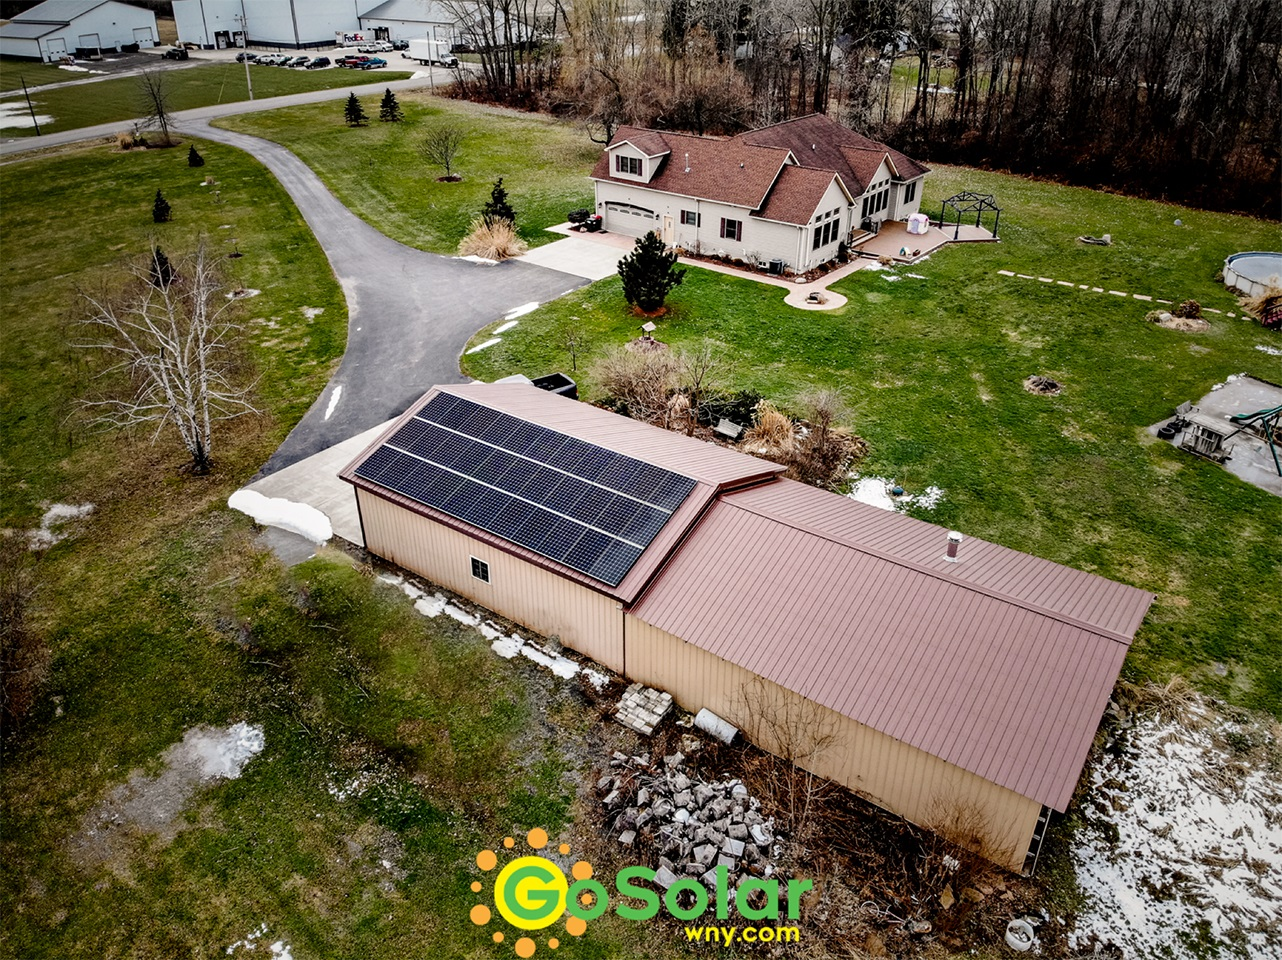 Solar Panel Installation on Steel Roof in MIddleport, NY